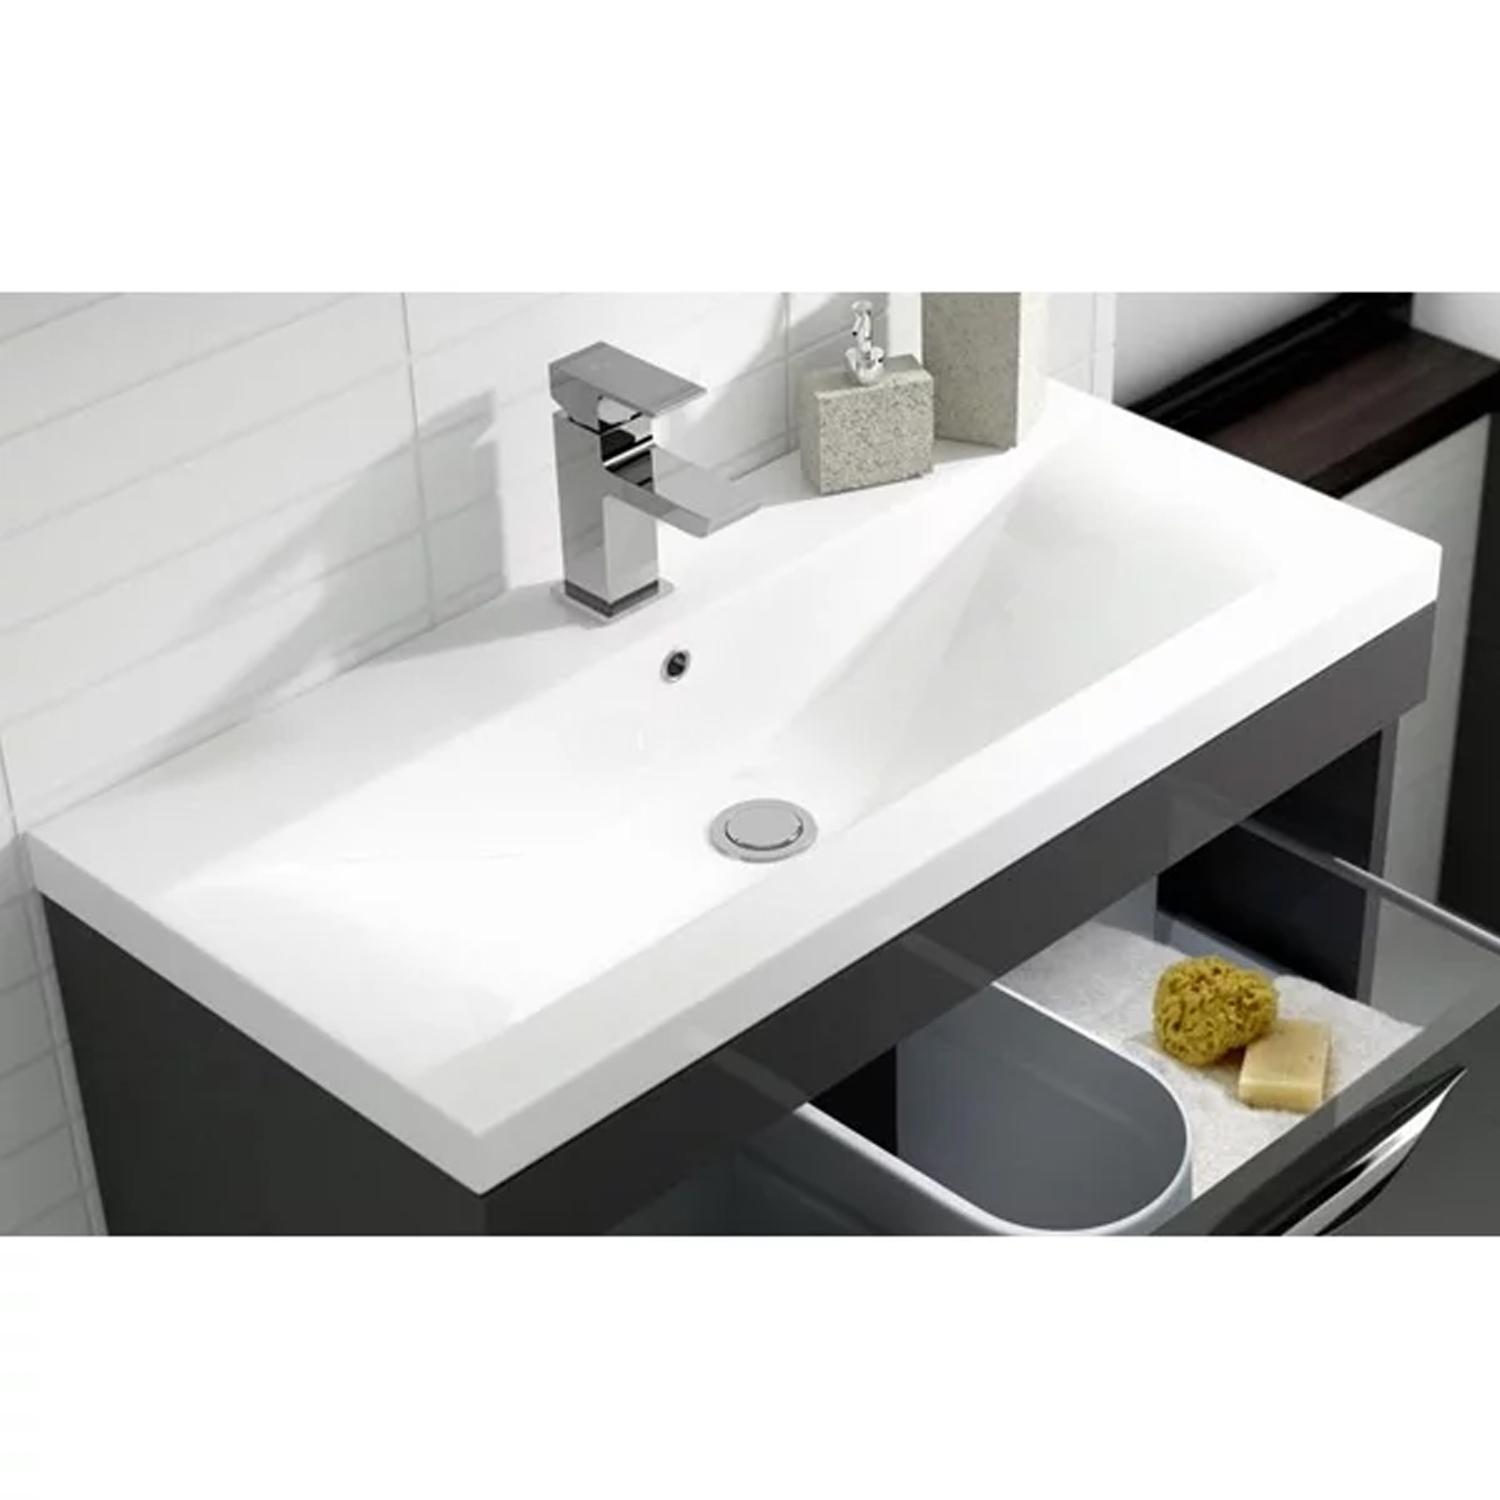 Hudson Reed Memoir Floor Standing Vanity Unit with Mid-Edged Basin 1 600mm W Gloss Grey 1 Tap Hole-0